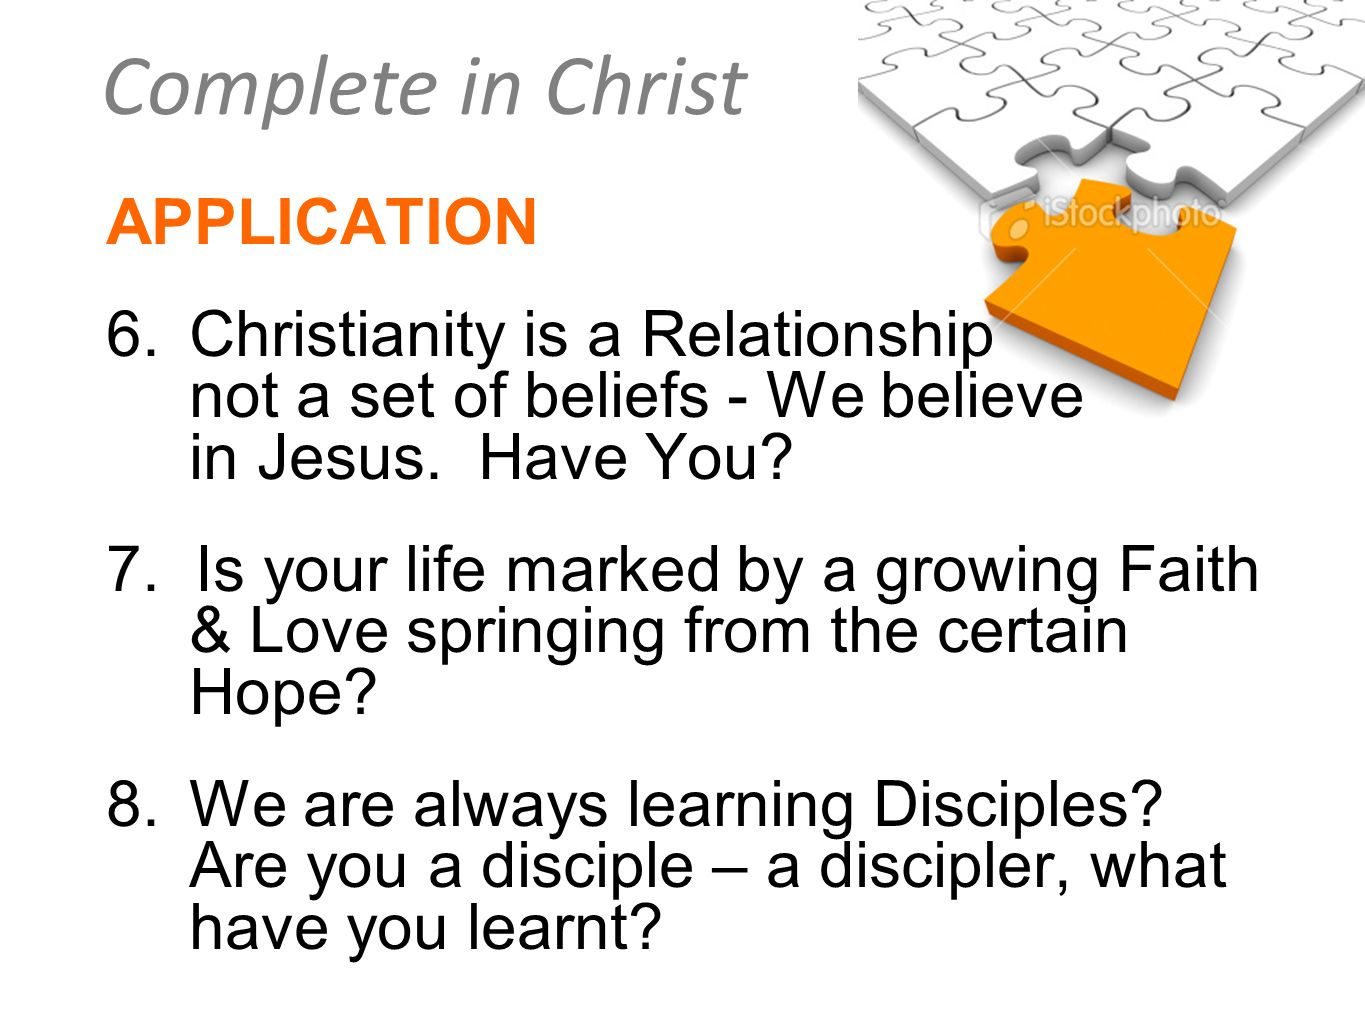 APPLICATION 6. Christianity is a Relationship not a set of beliefs - We believe in Jesus. Have You